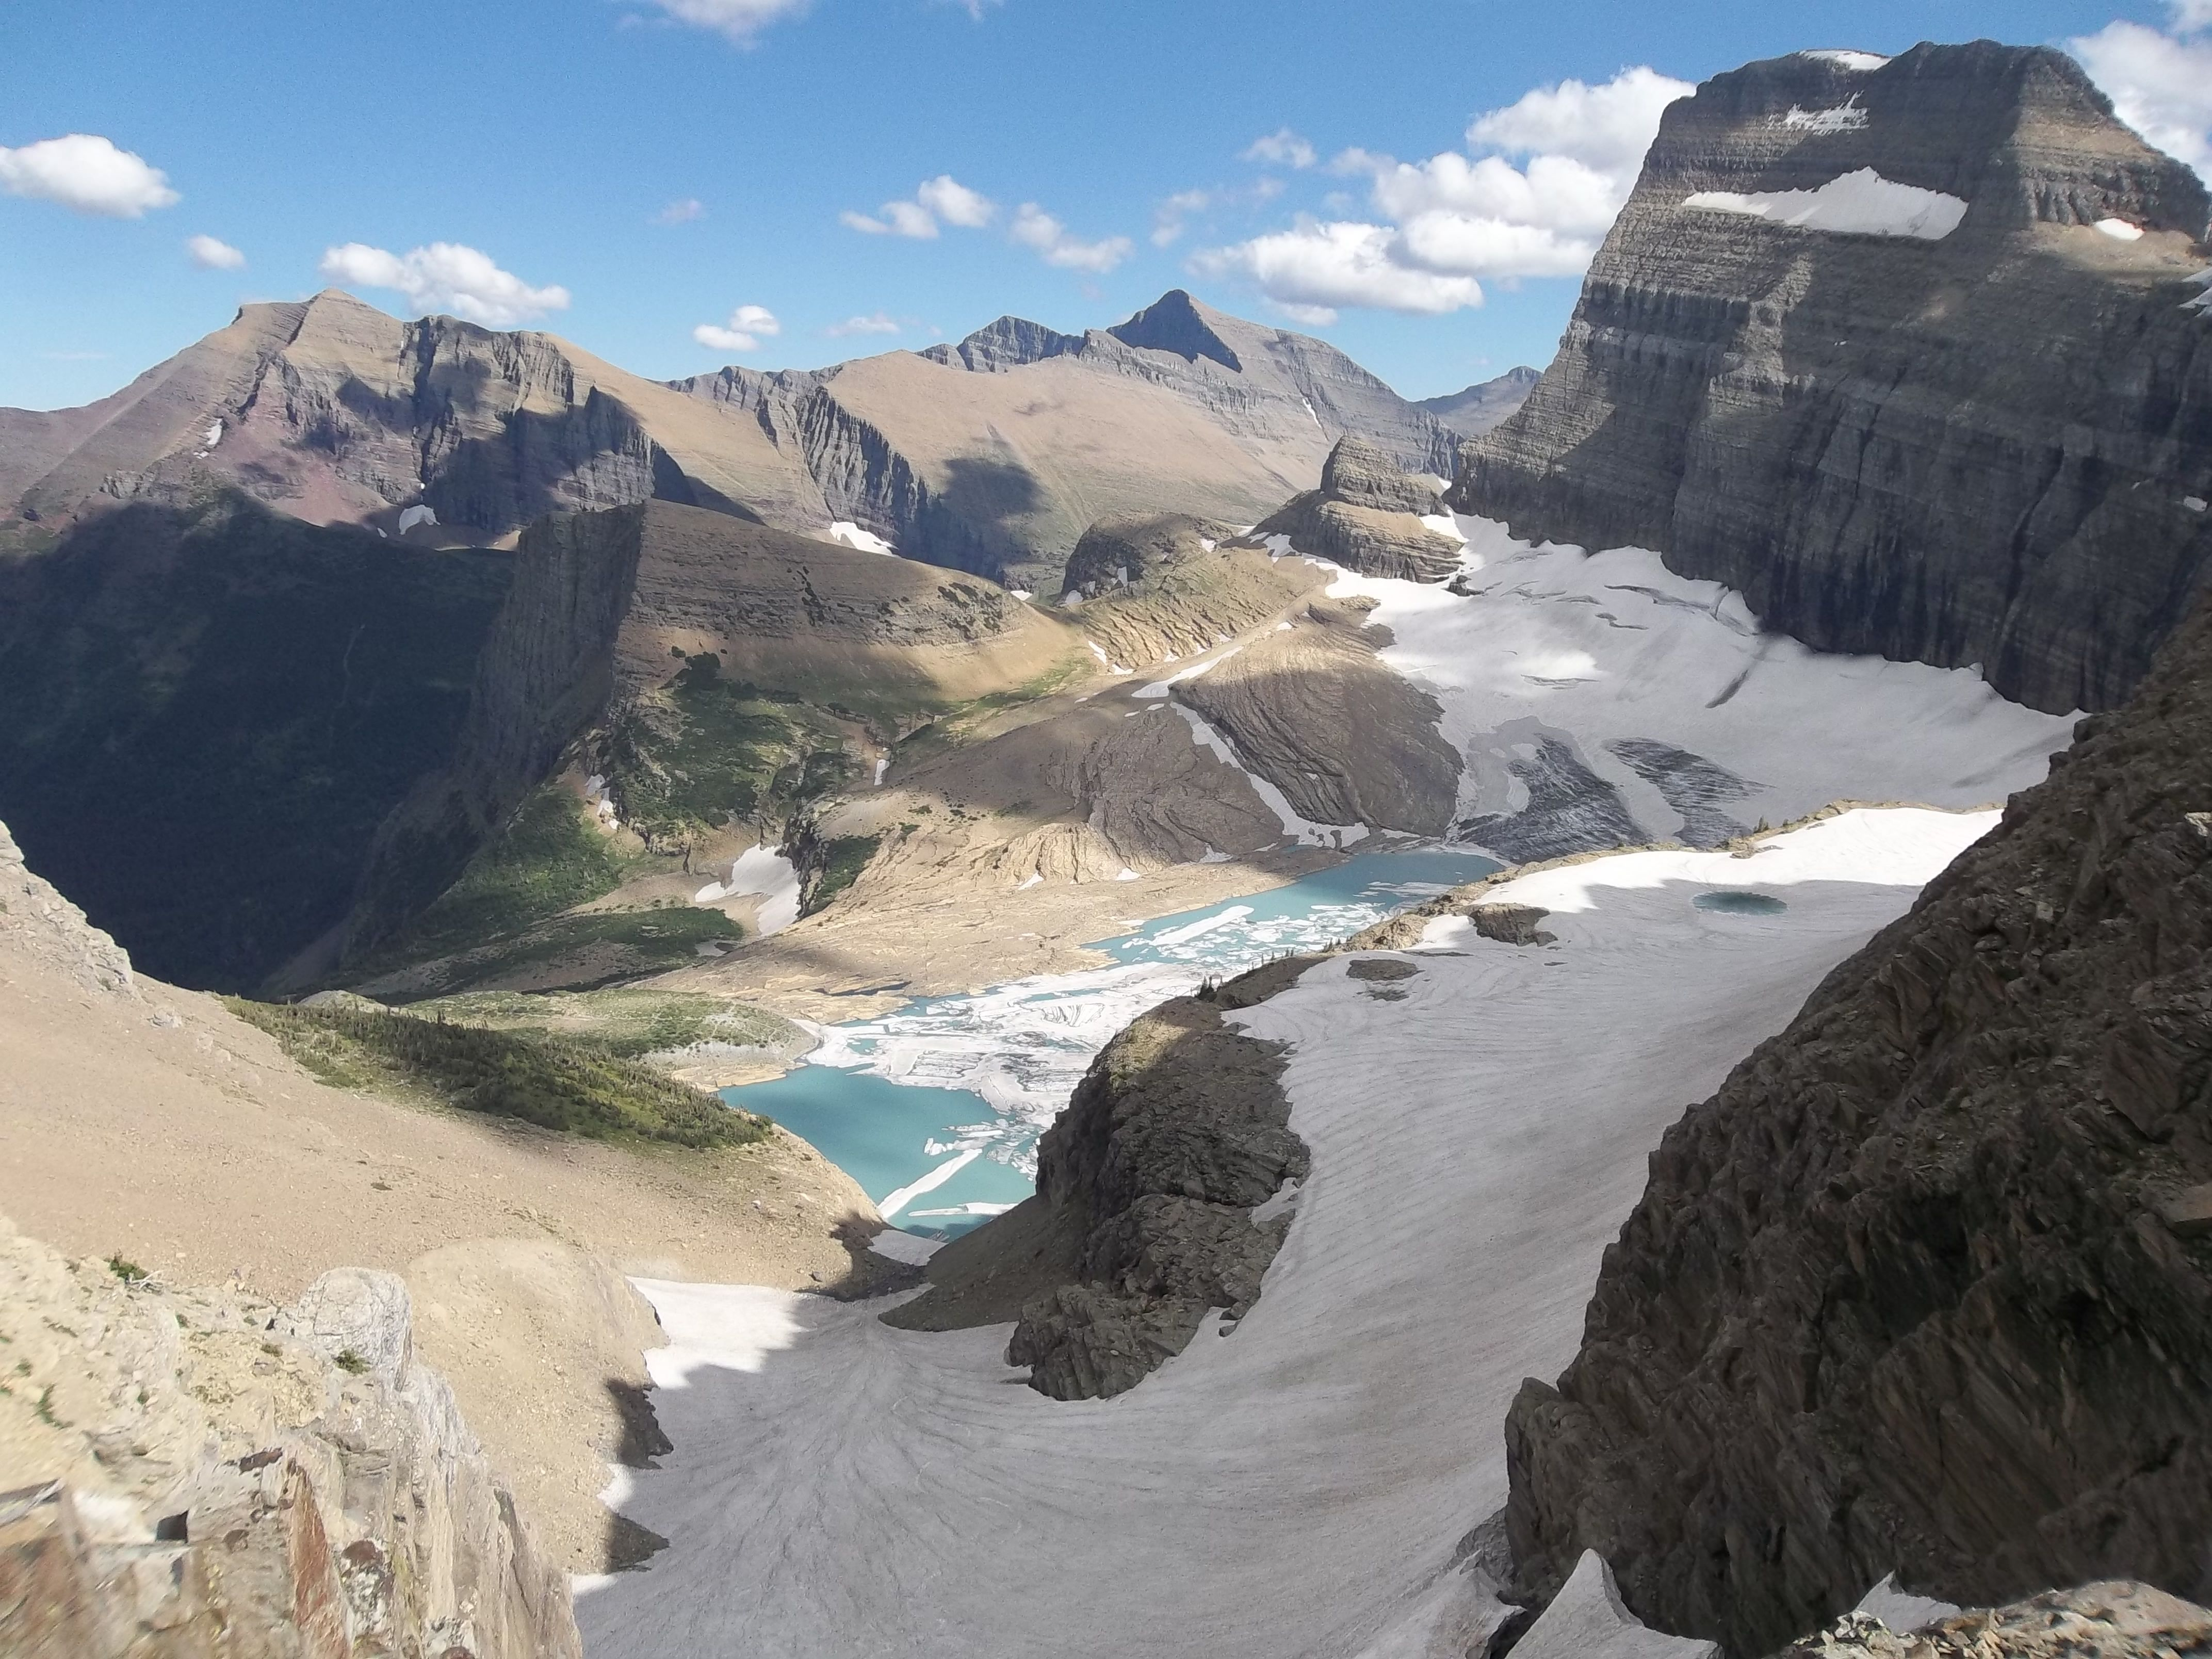 Check out our blog for tips about visiting Glacier National Park!